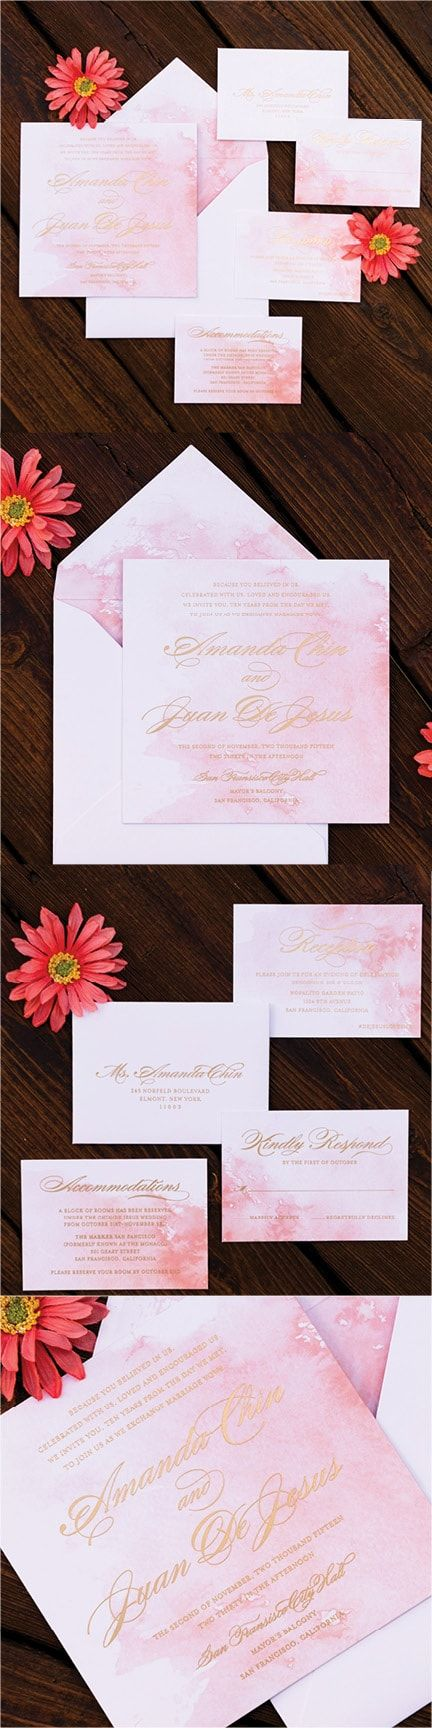 pink and gold wedding invitation kits%0A Blush Watercolor and Gold Metallic Wedding Invitation by Engaging Papers